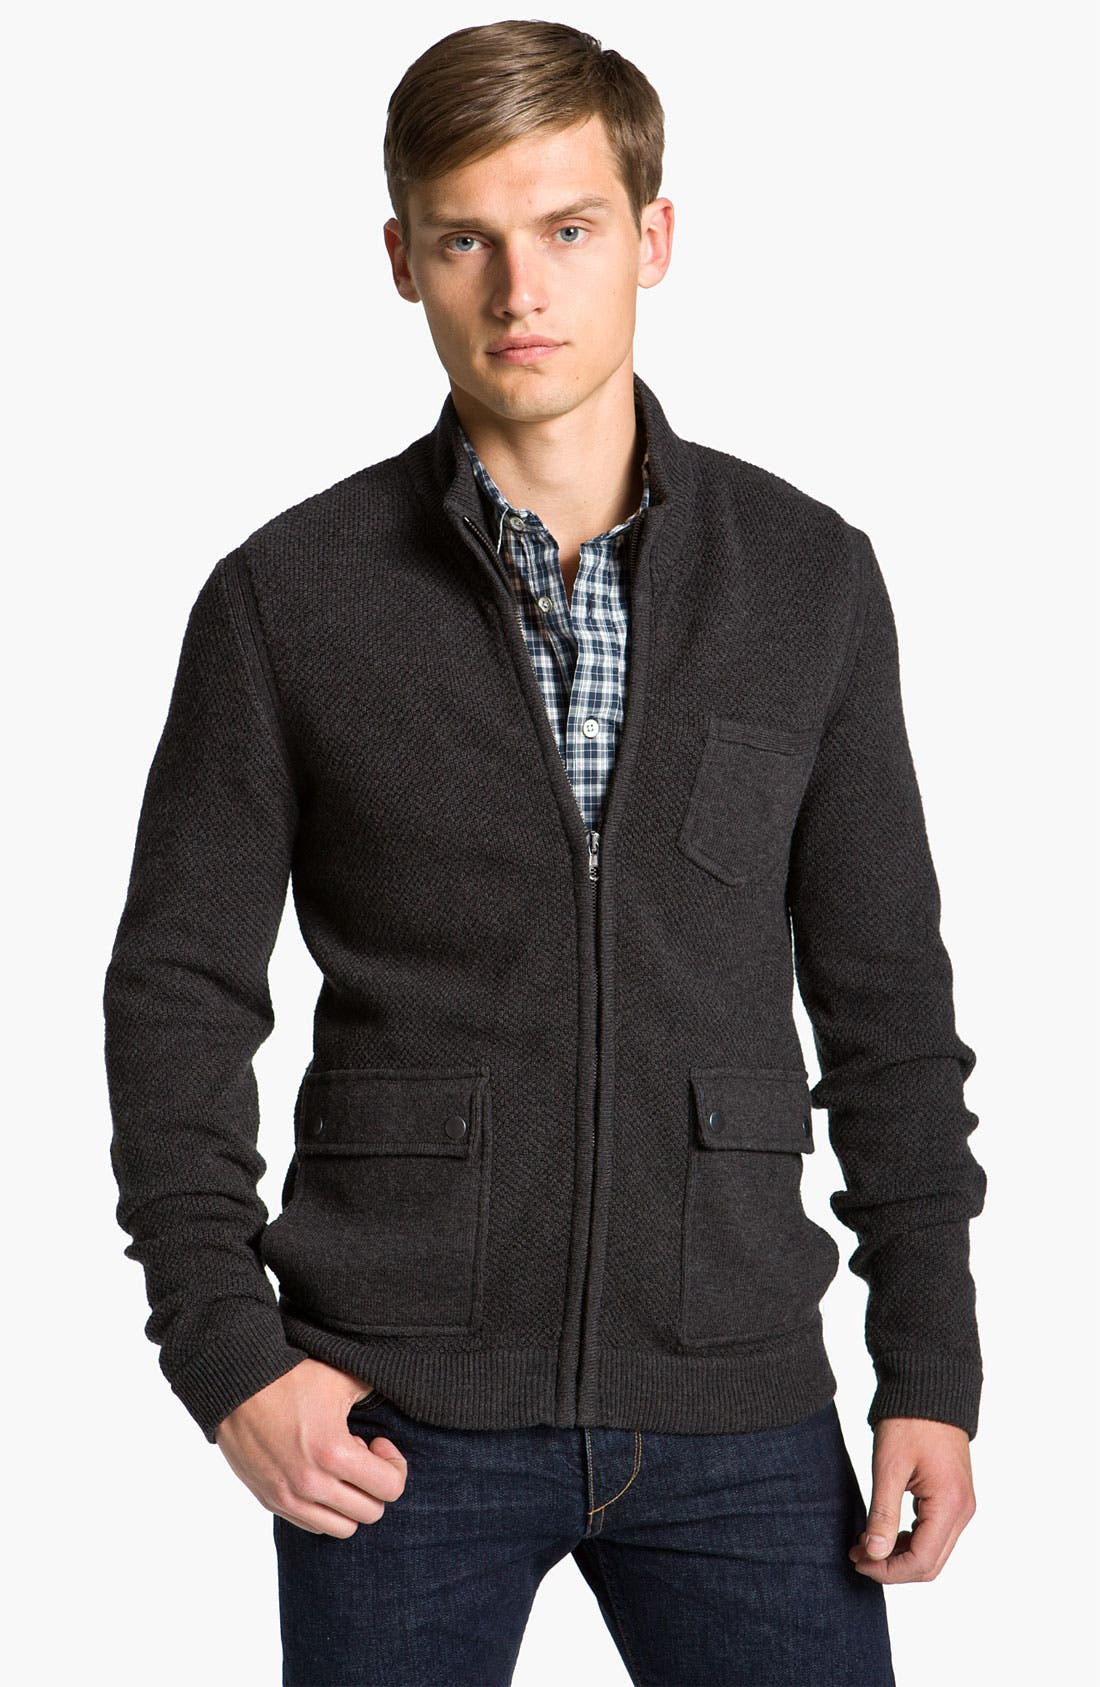 Alternate Image 1 Selected - rag & bone 'Alps' Knit Jacket